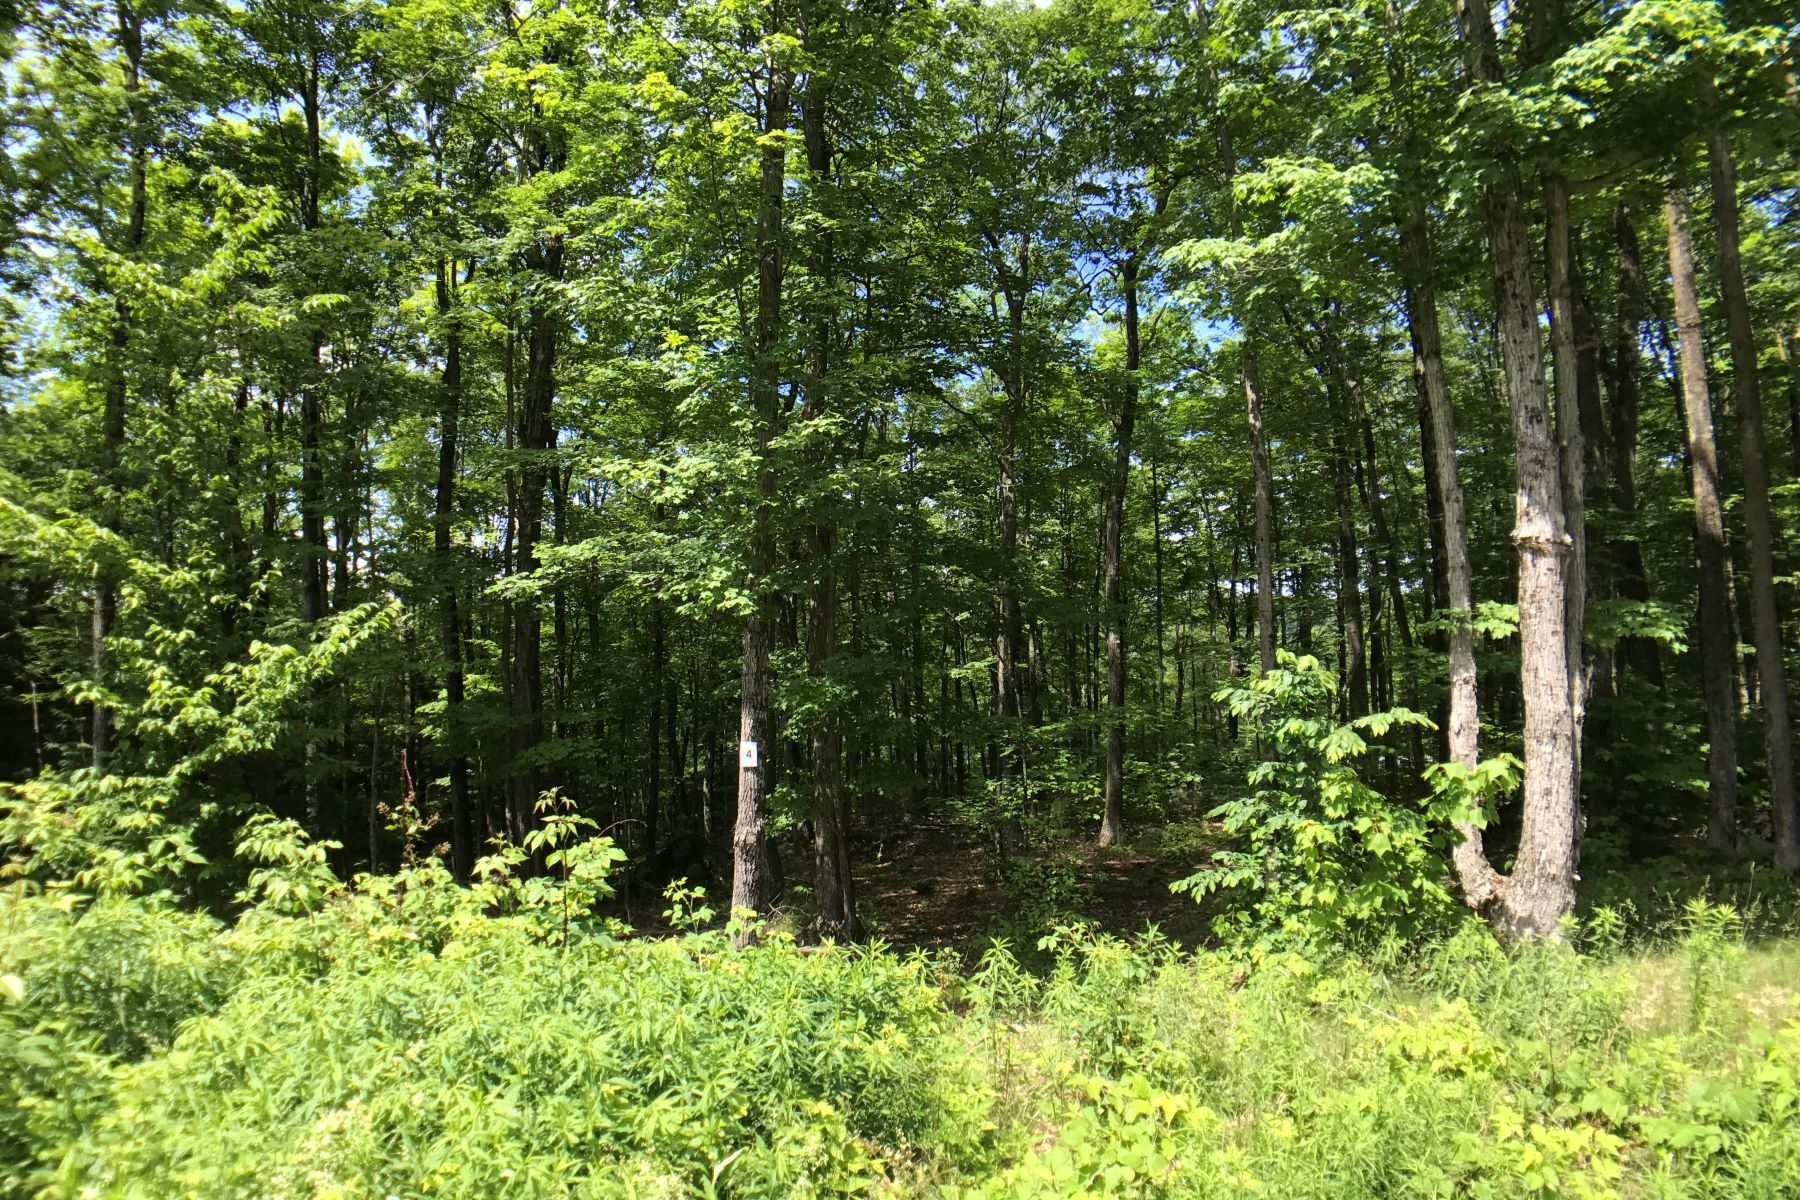 Terrain pour l Vente à Affordable Ready-to-Build Parcel with Shared Waterfront Access Lot #4, Moose Dr, Lee, Massachusetts, 01238 États-Unis